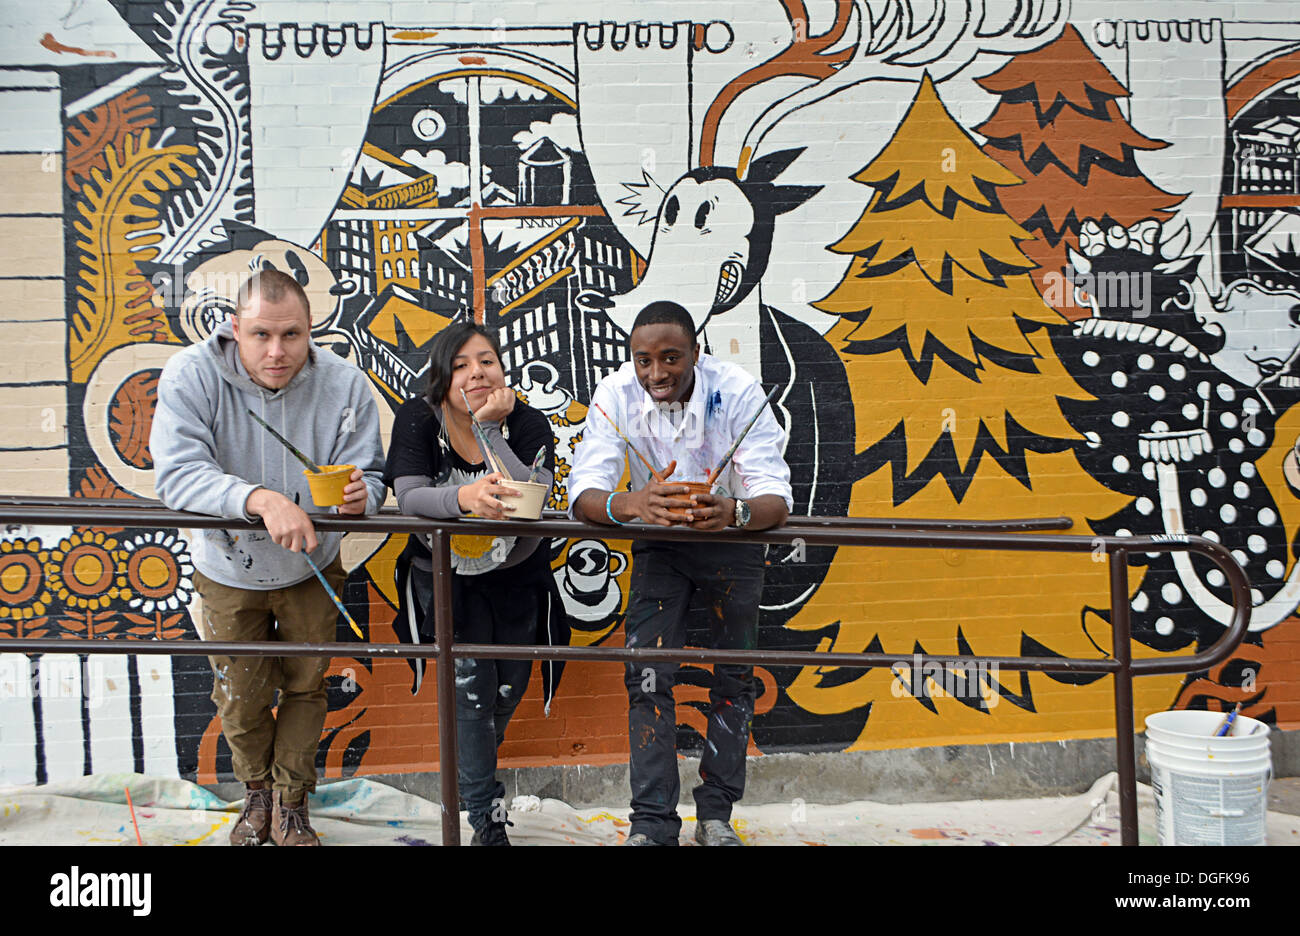 Portrait of 3 graffiti artists in front of a work in progress in Williamsburg, Brooklyn, New York - Stock Image